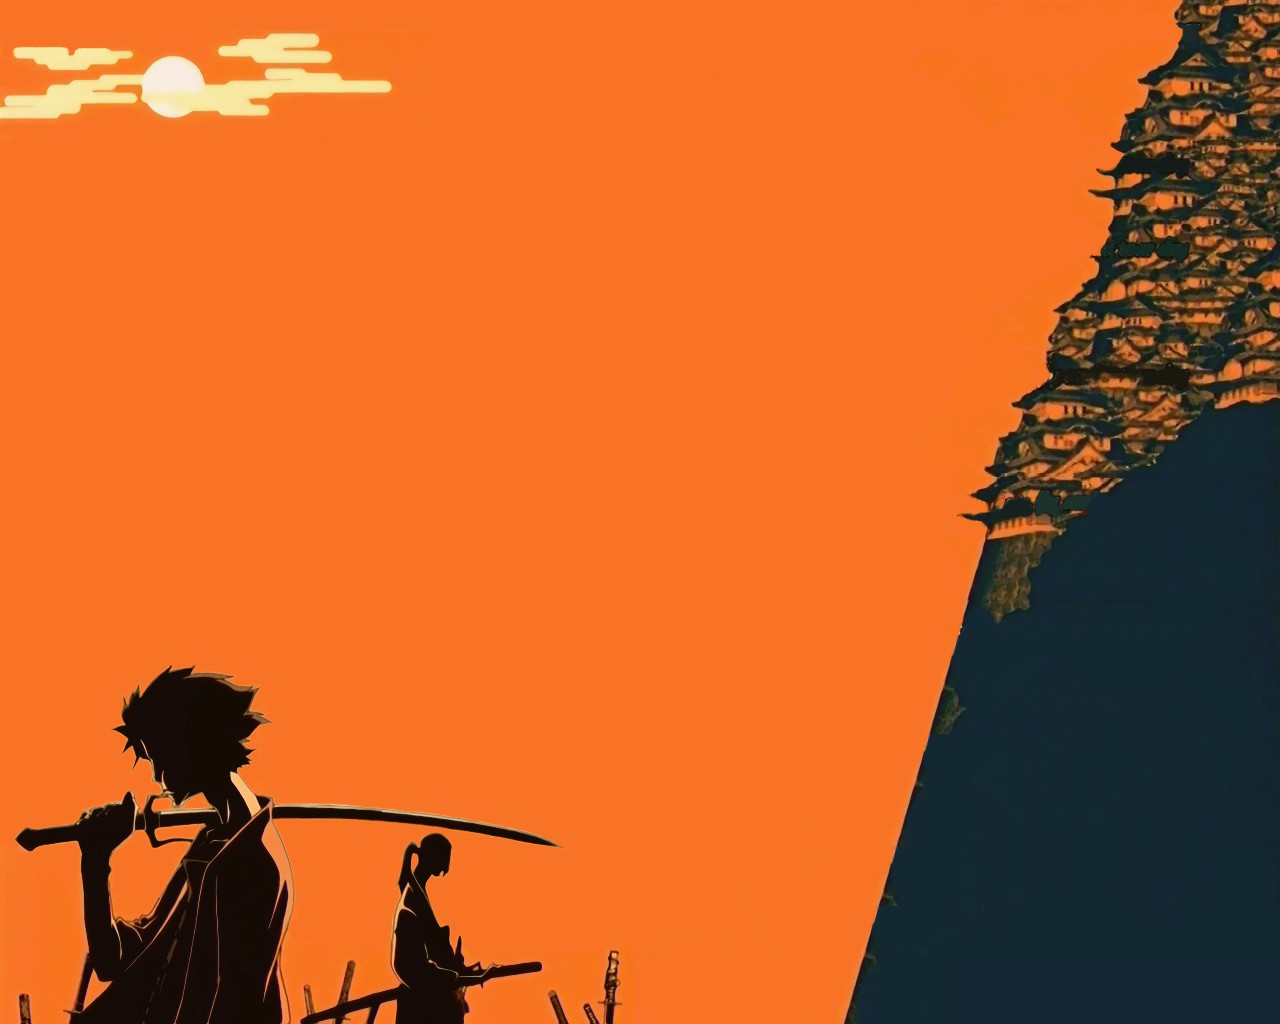 Samurai Champloo Wallpapers 1080p QBBV7PX   4USkY 1280x1024